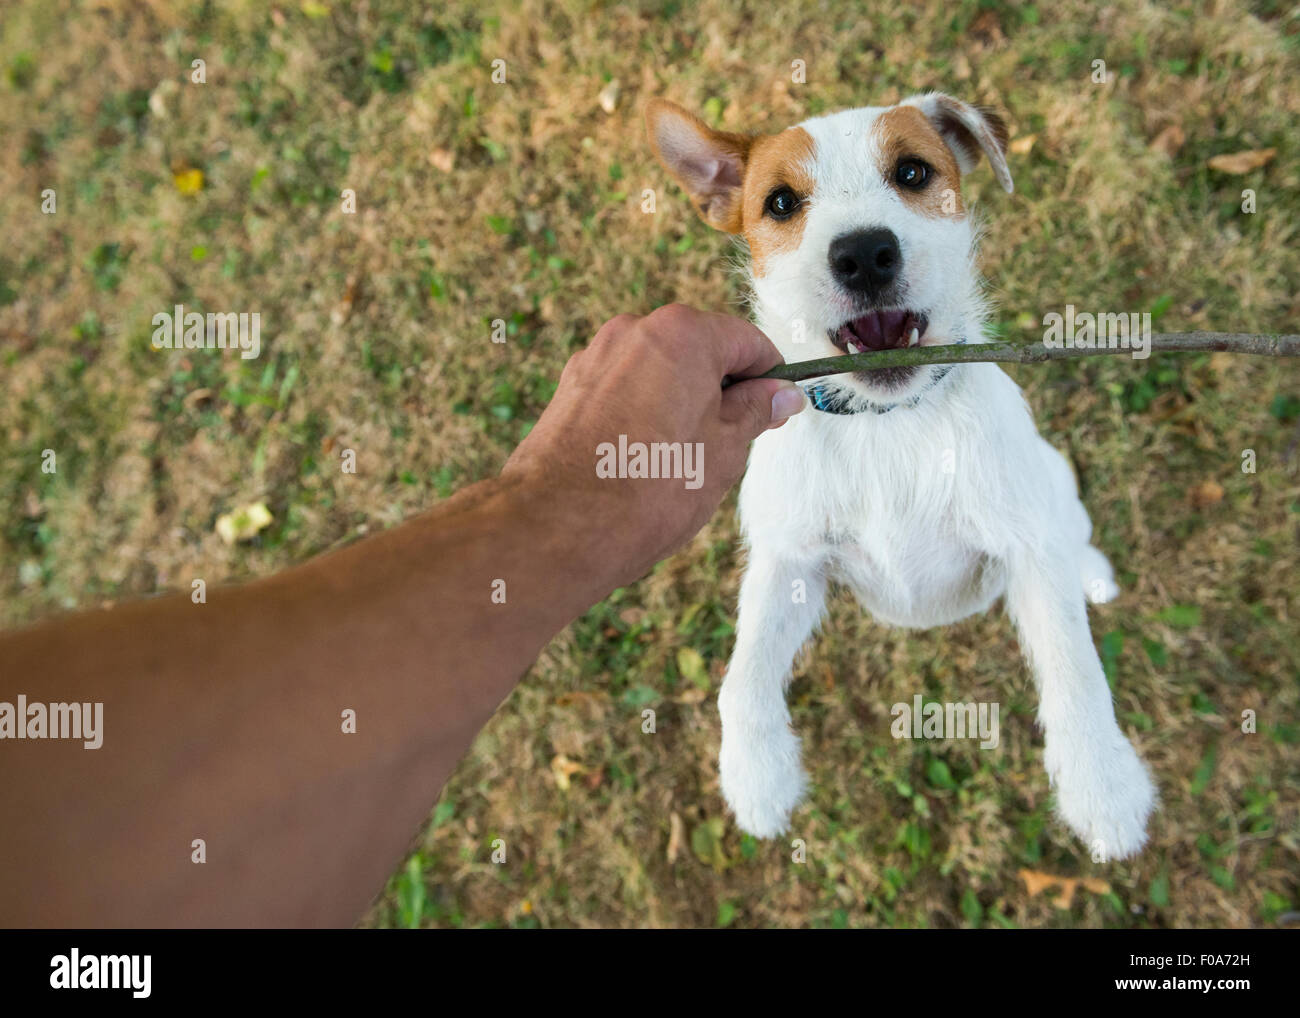 how to stop a puppy from jumping up and biting